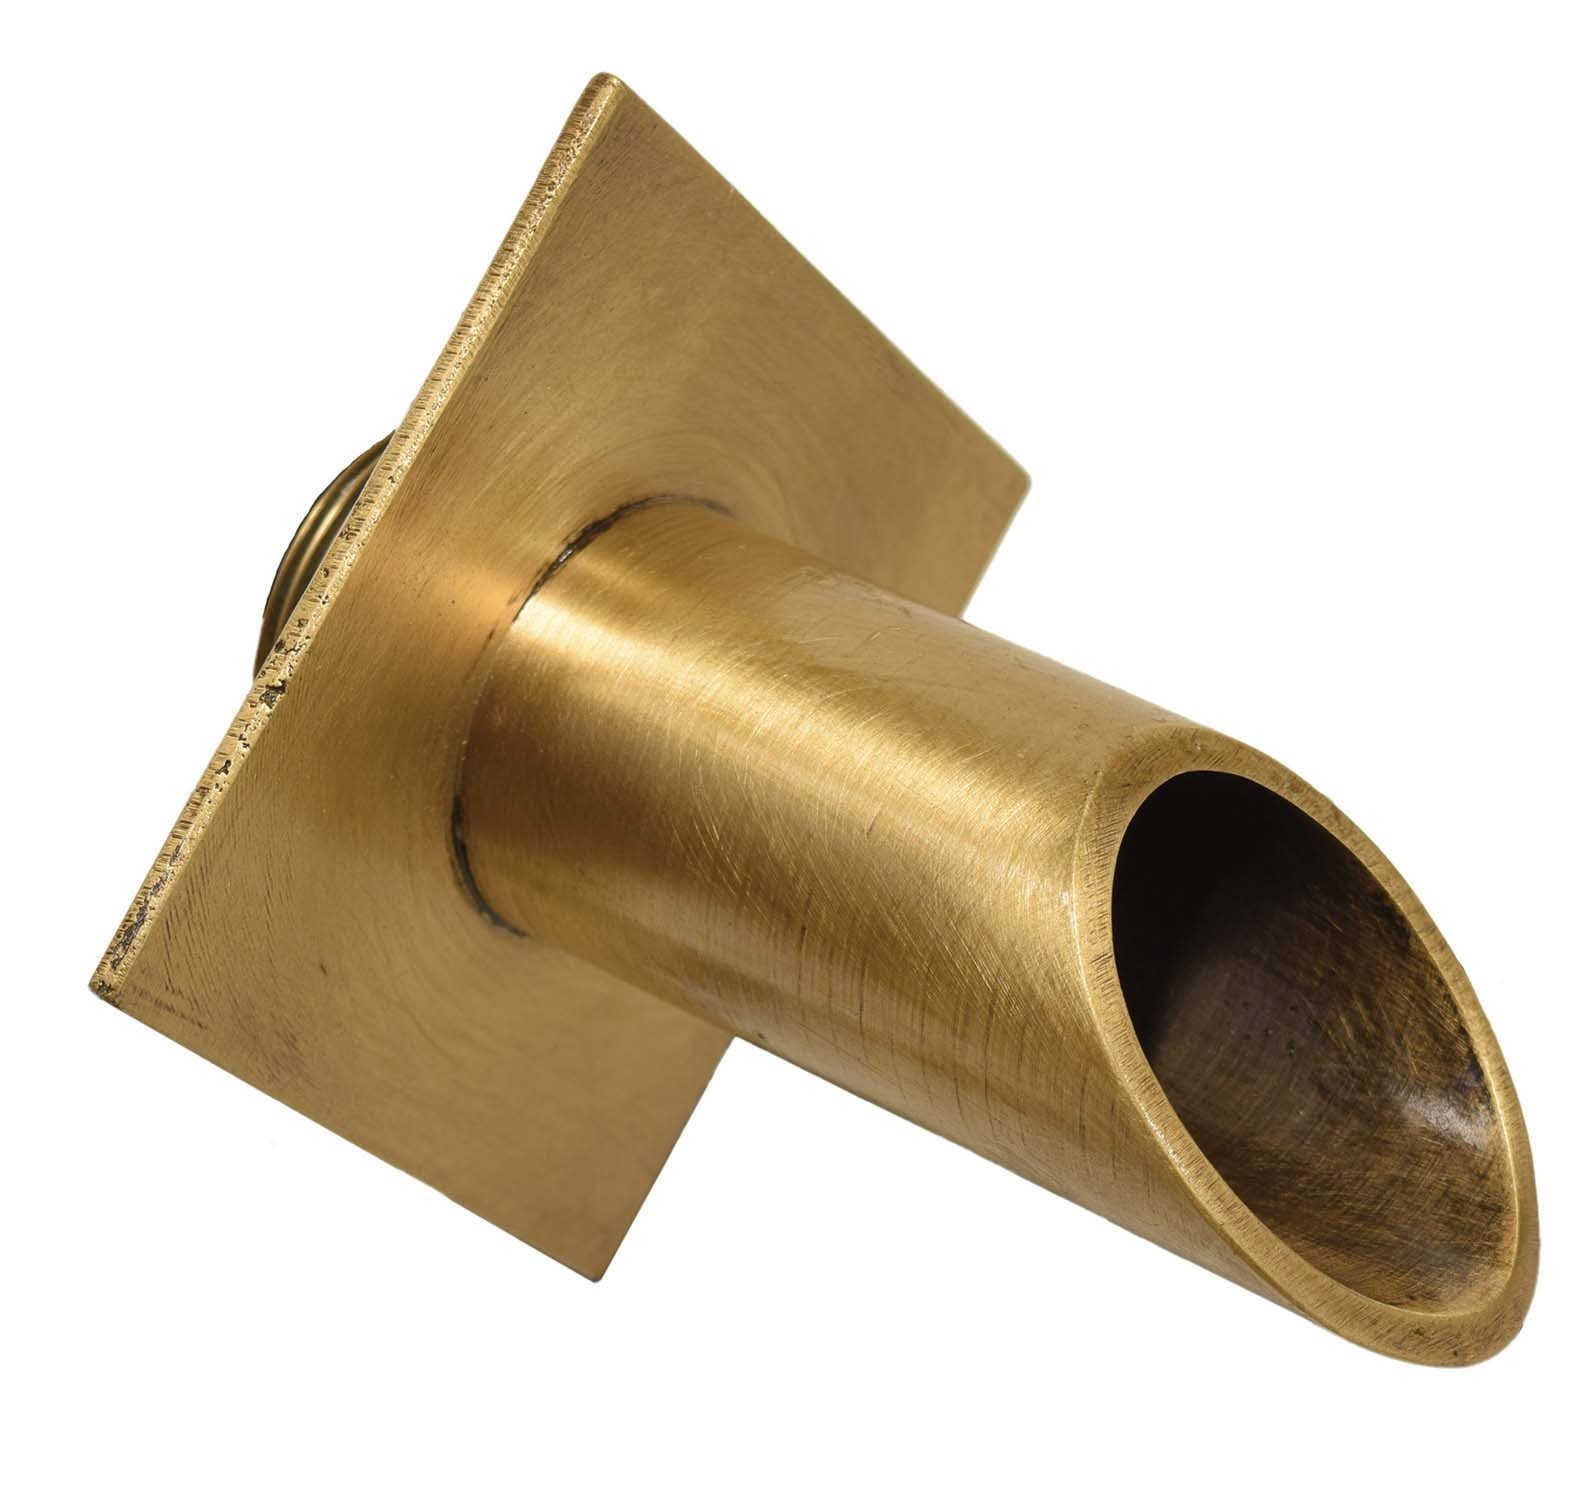 EasyPro Pond Products Vianti Falls Brass Round Scupper with Diamond Wall Plate, 2''